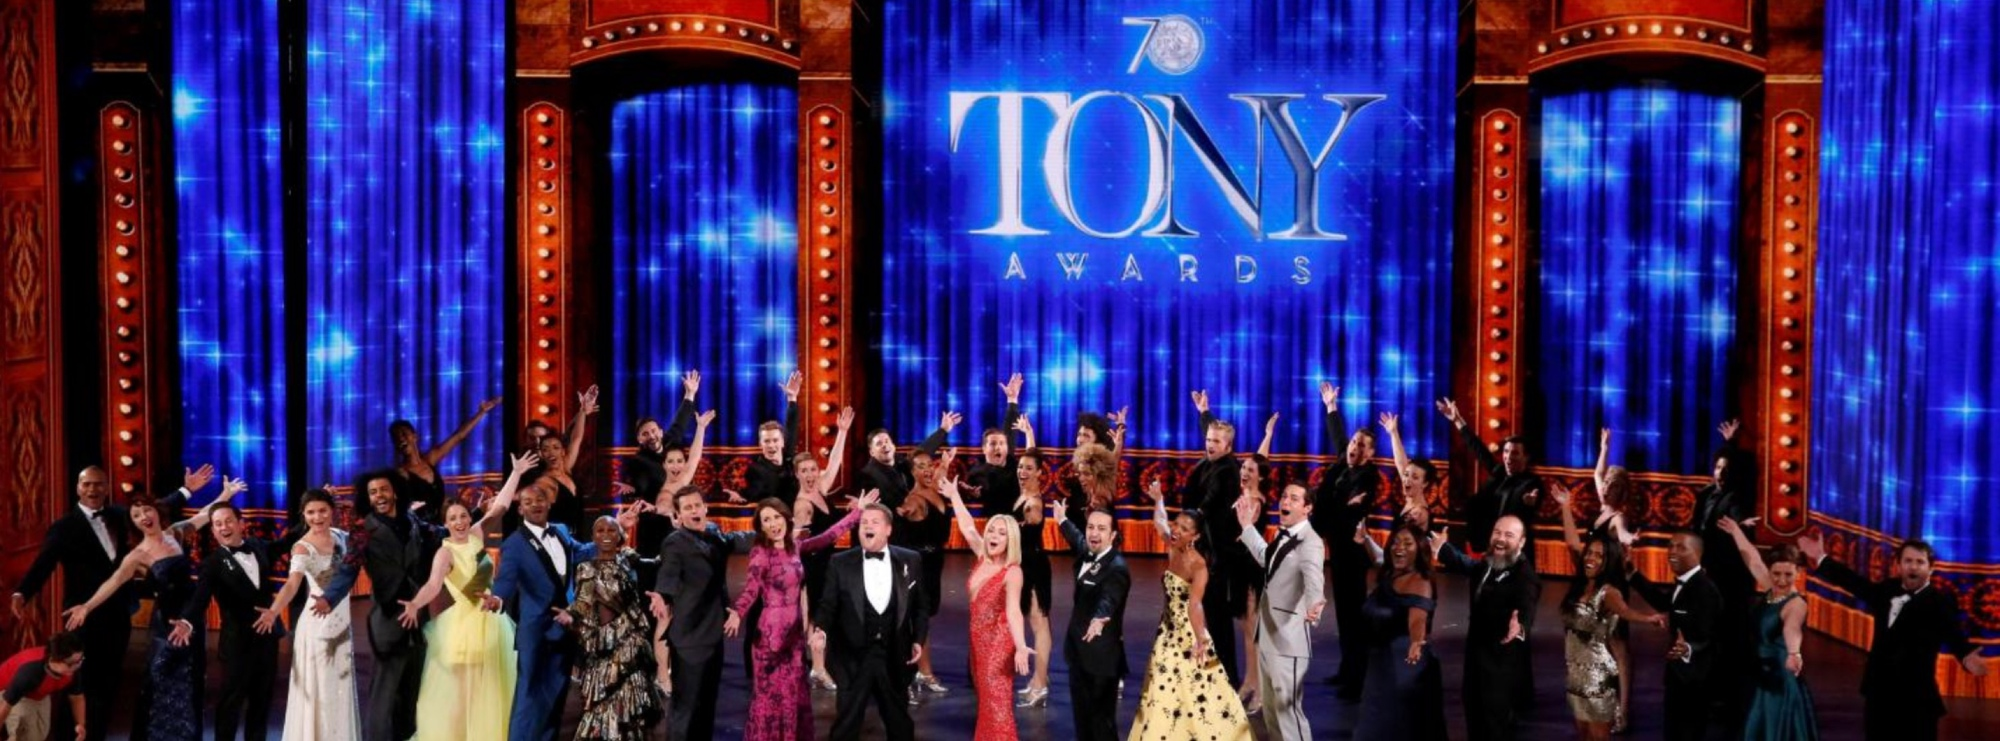 Tony Awards 2020 Full Show.Presenters And Performers The American Theatre Wing S Tony